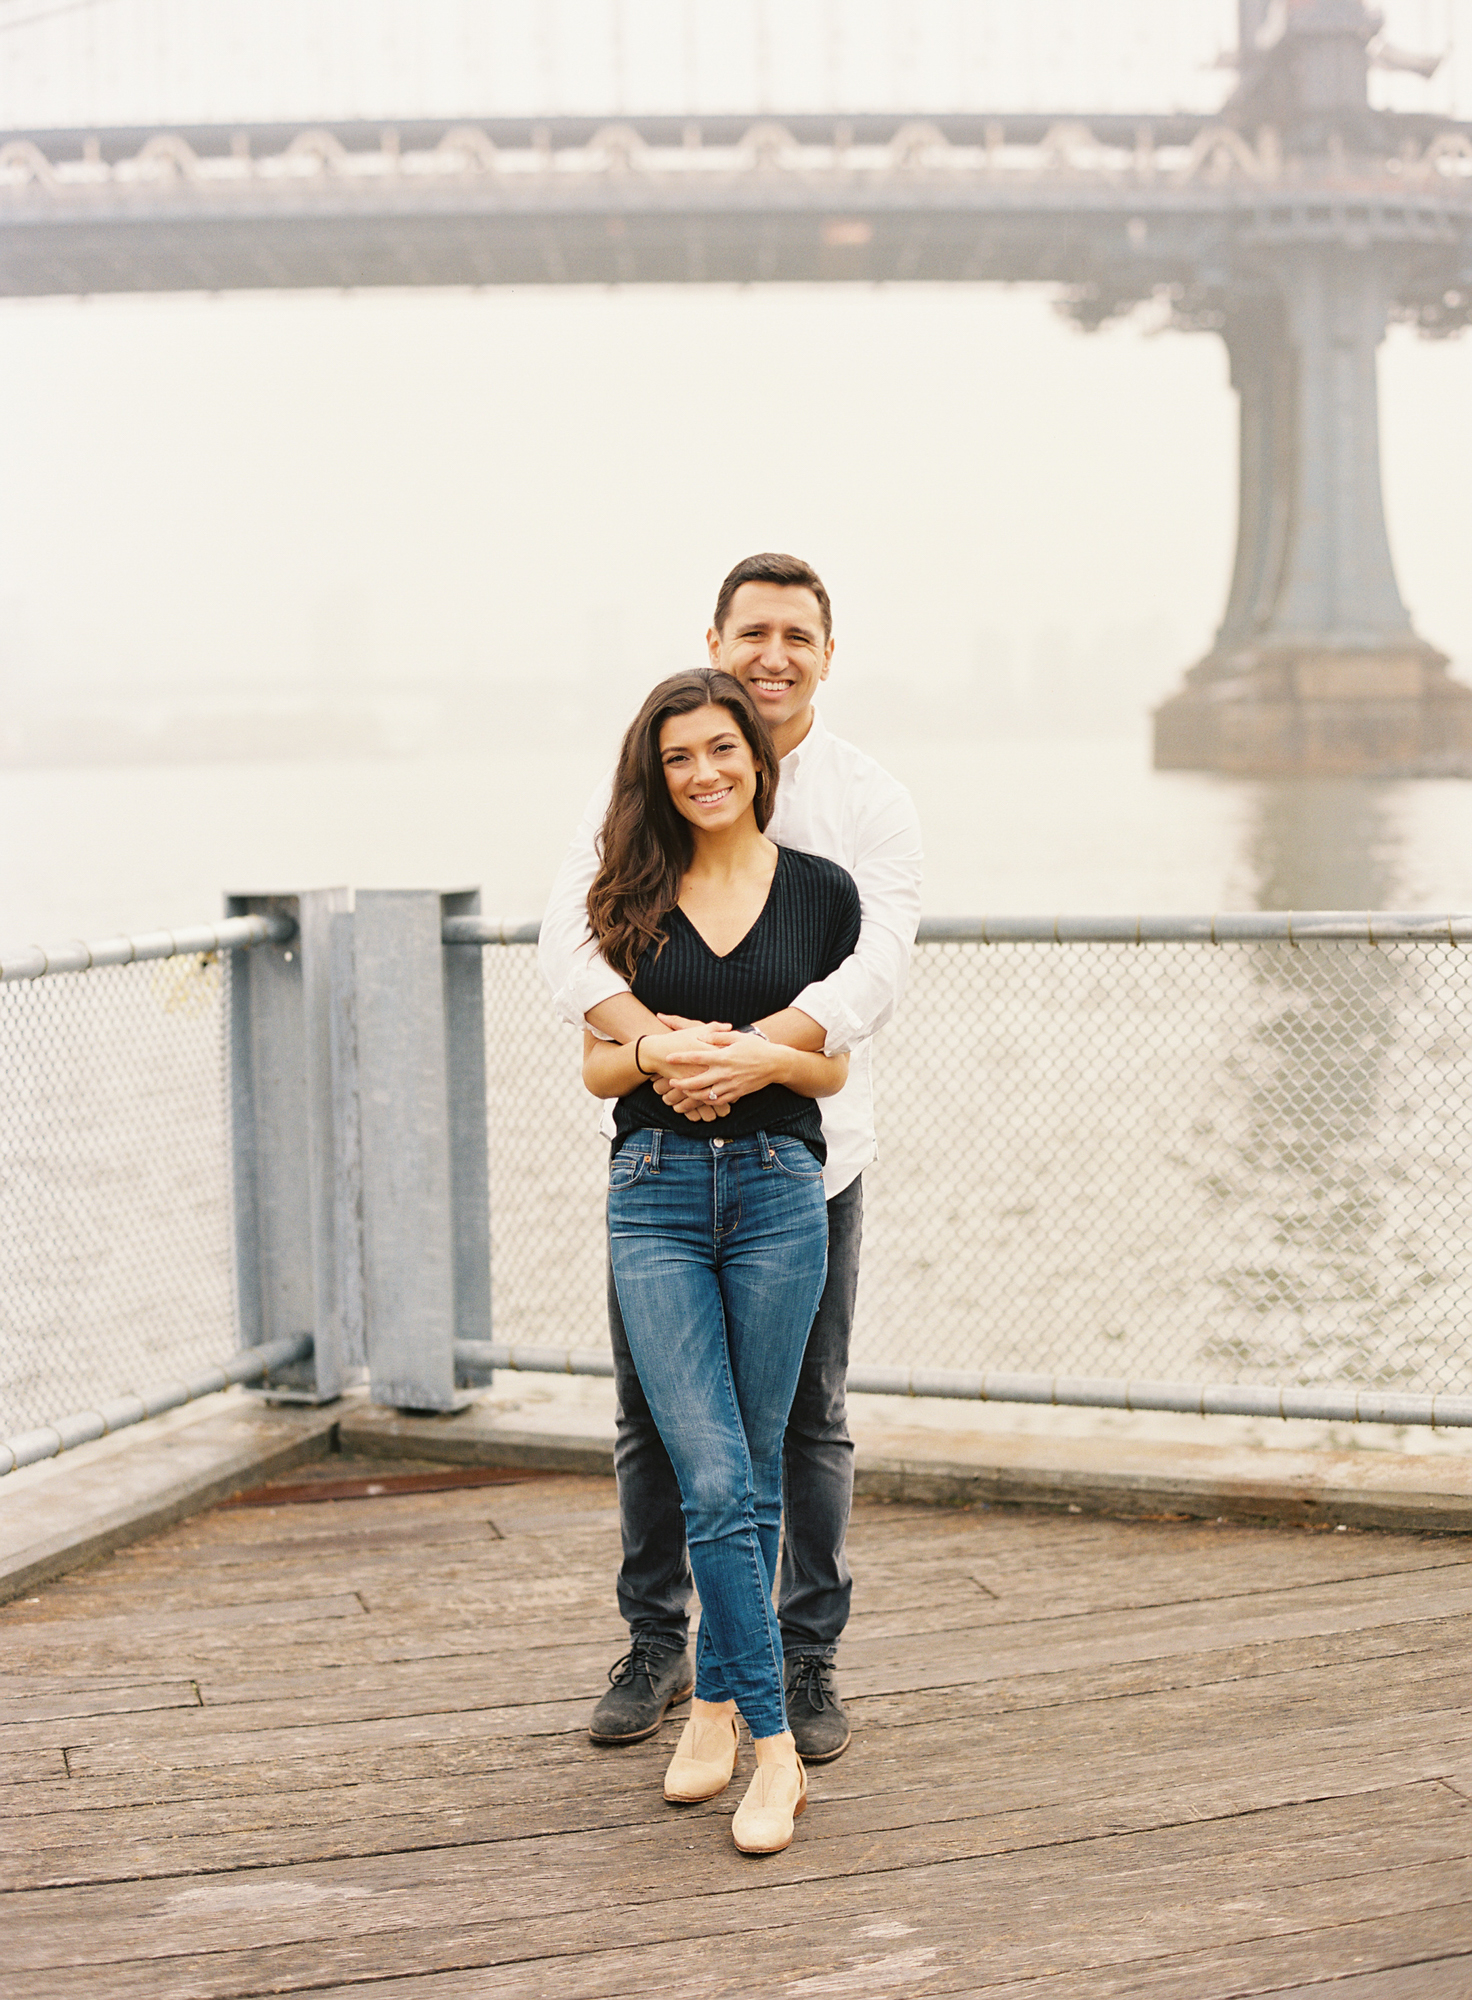 brooklyn-engagement-photos-002.jpg